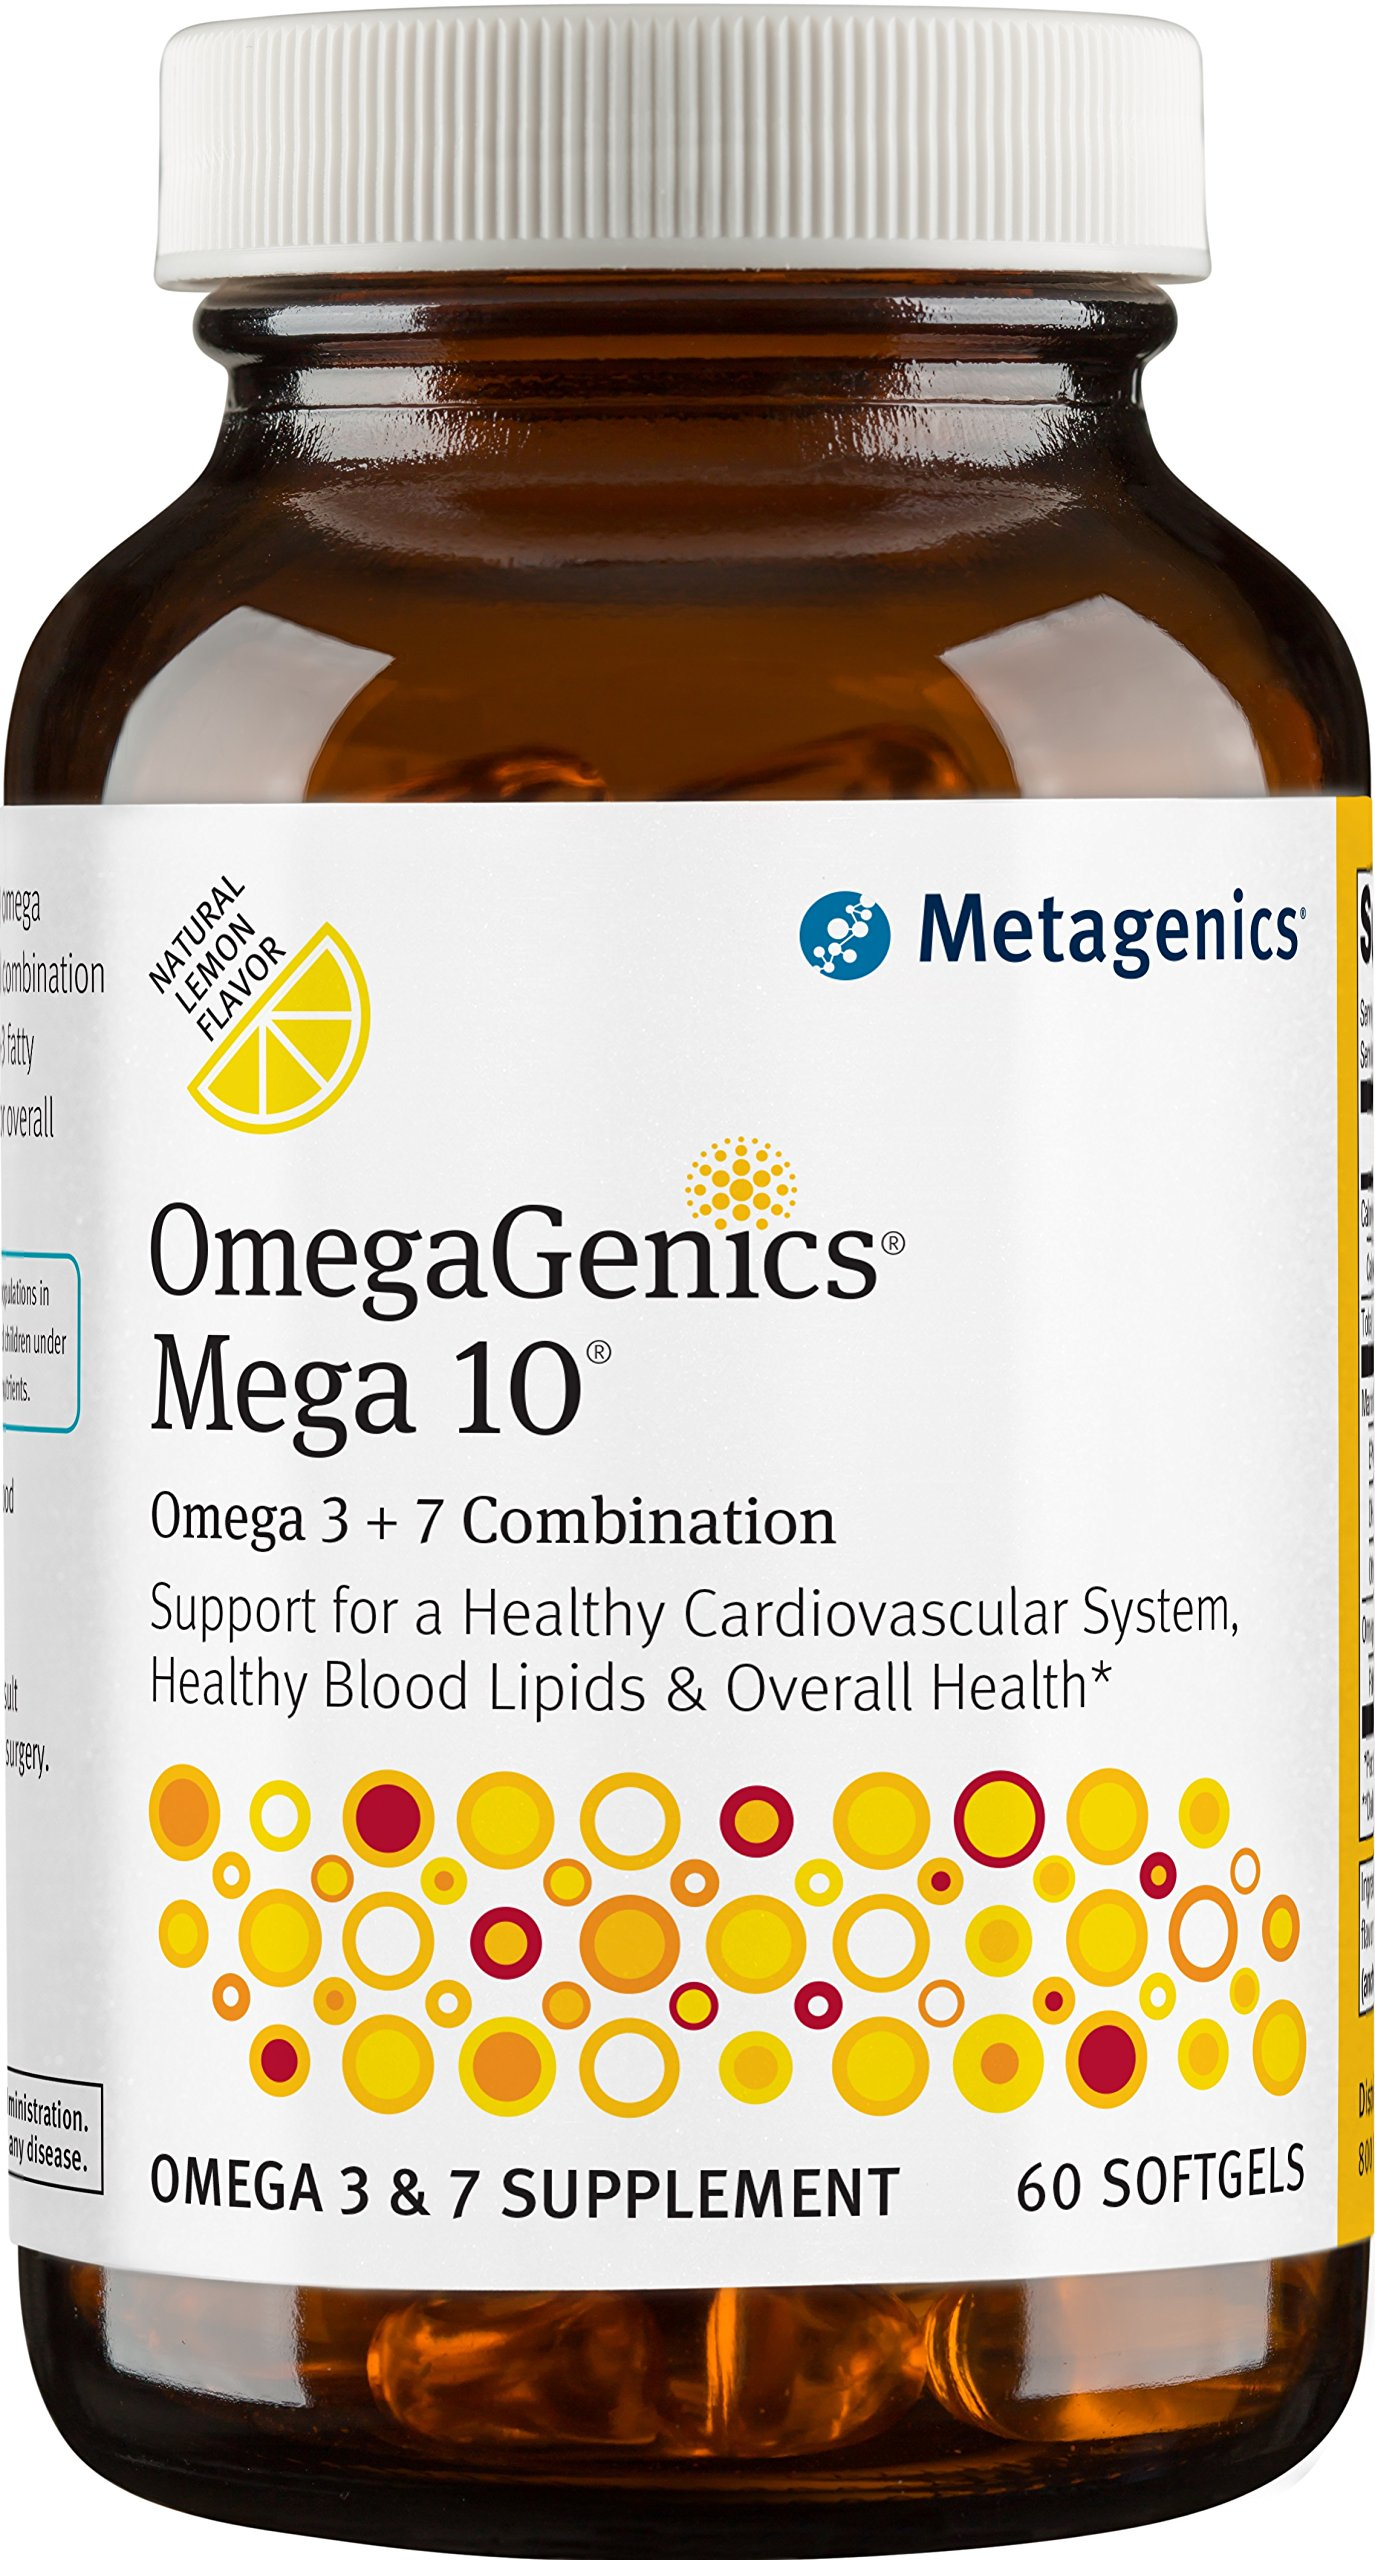 Metagenics - OmegaGenics Mega 10, 60 Count by Metagenics